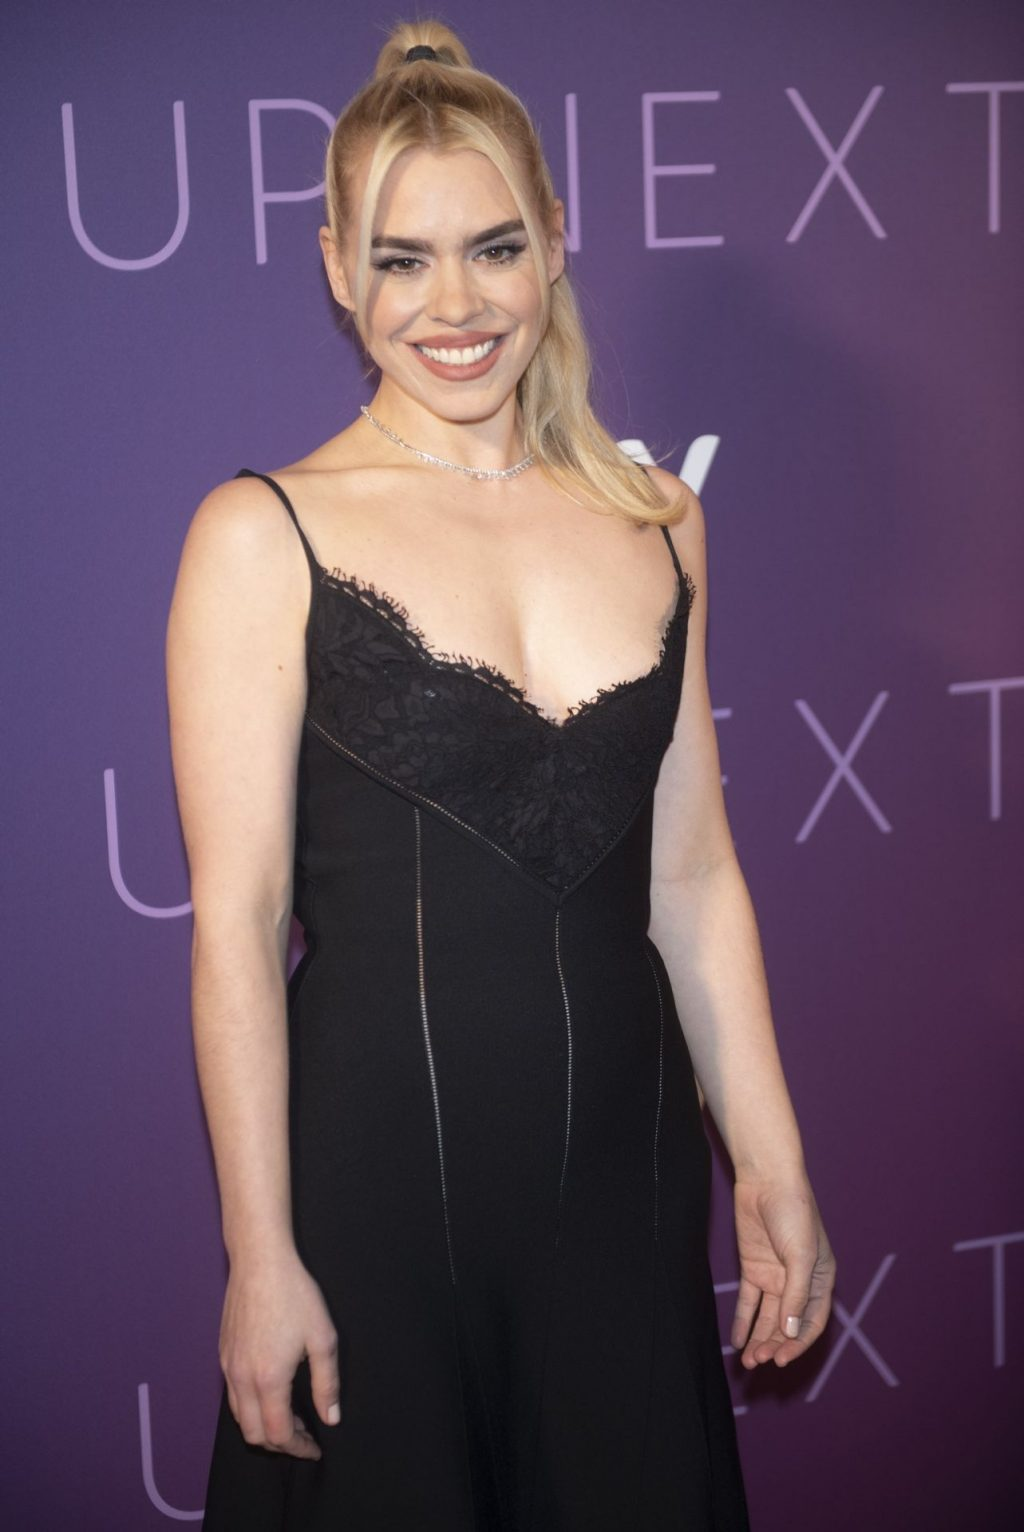 Billie Piper Sexy The Fappening Blog 32 1024x1532 - Billie Piper Smiles at the Sky Up Next Event (67 Photos)